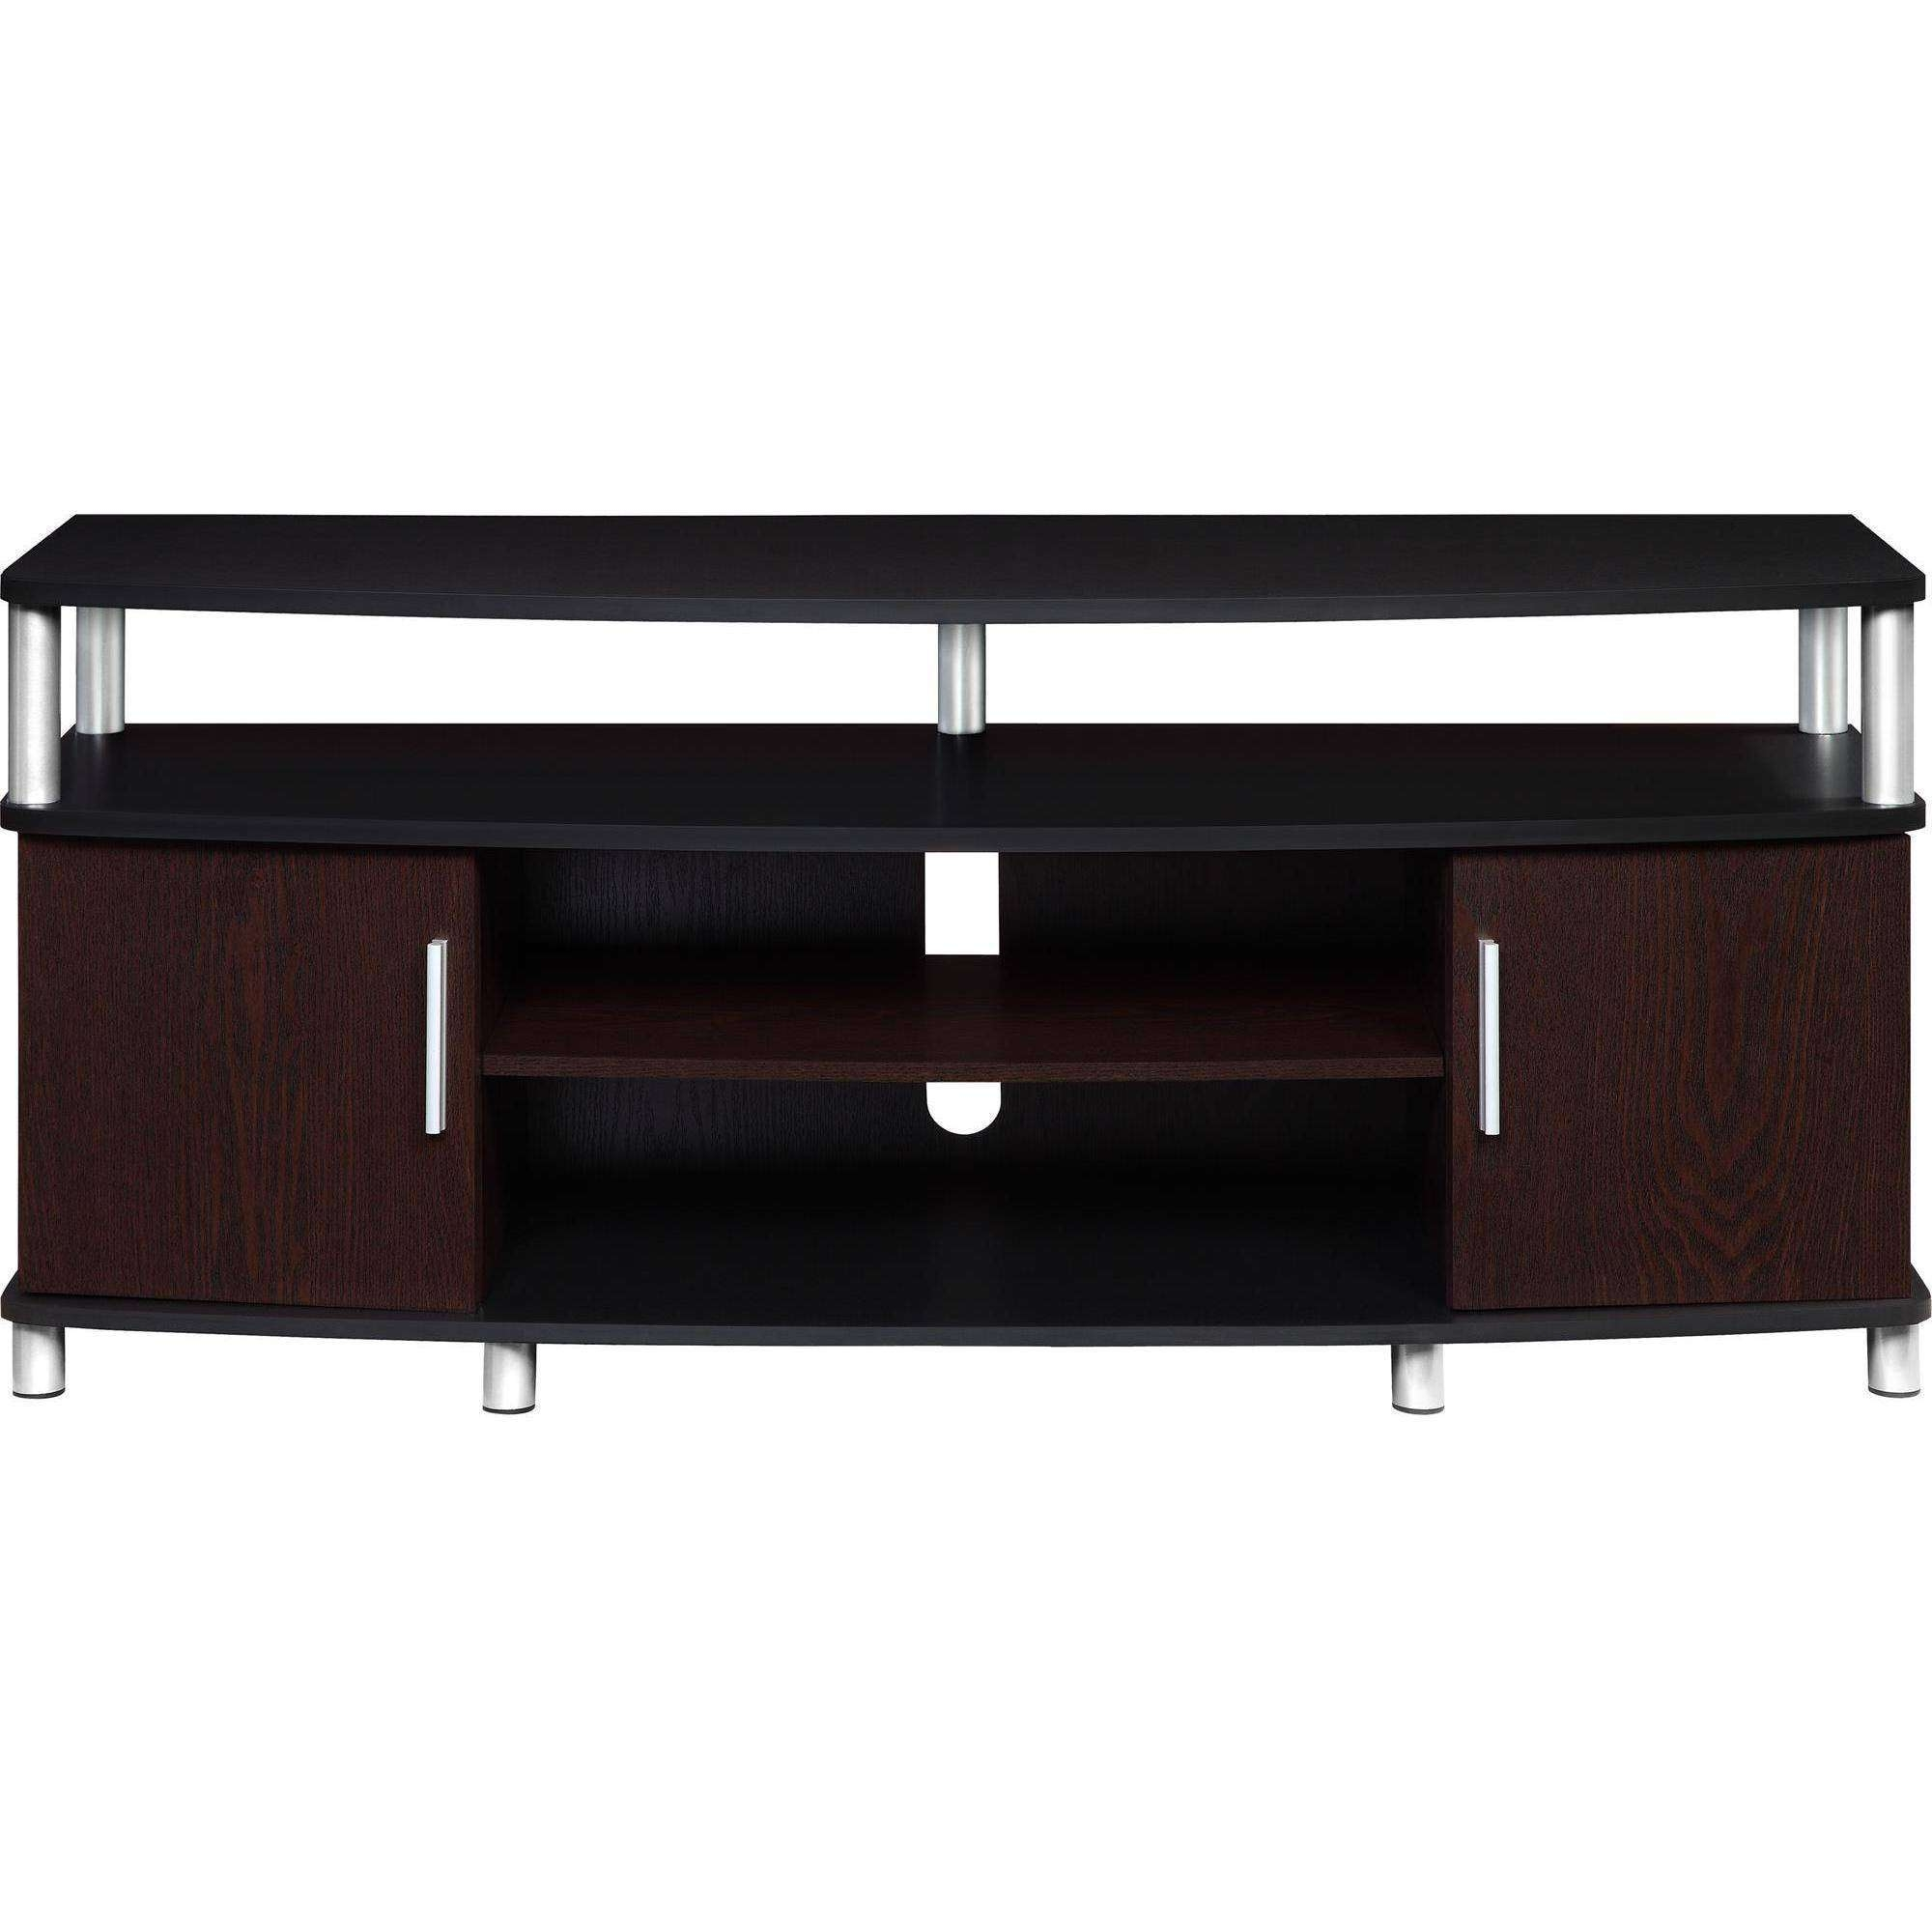 Living ~ Mobile Tv Stand Tv Cabinet Designs For Living Room Tv Within Small Tv Stands On Wheels (View 6 of 20)